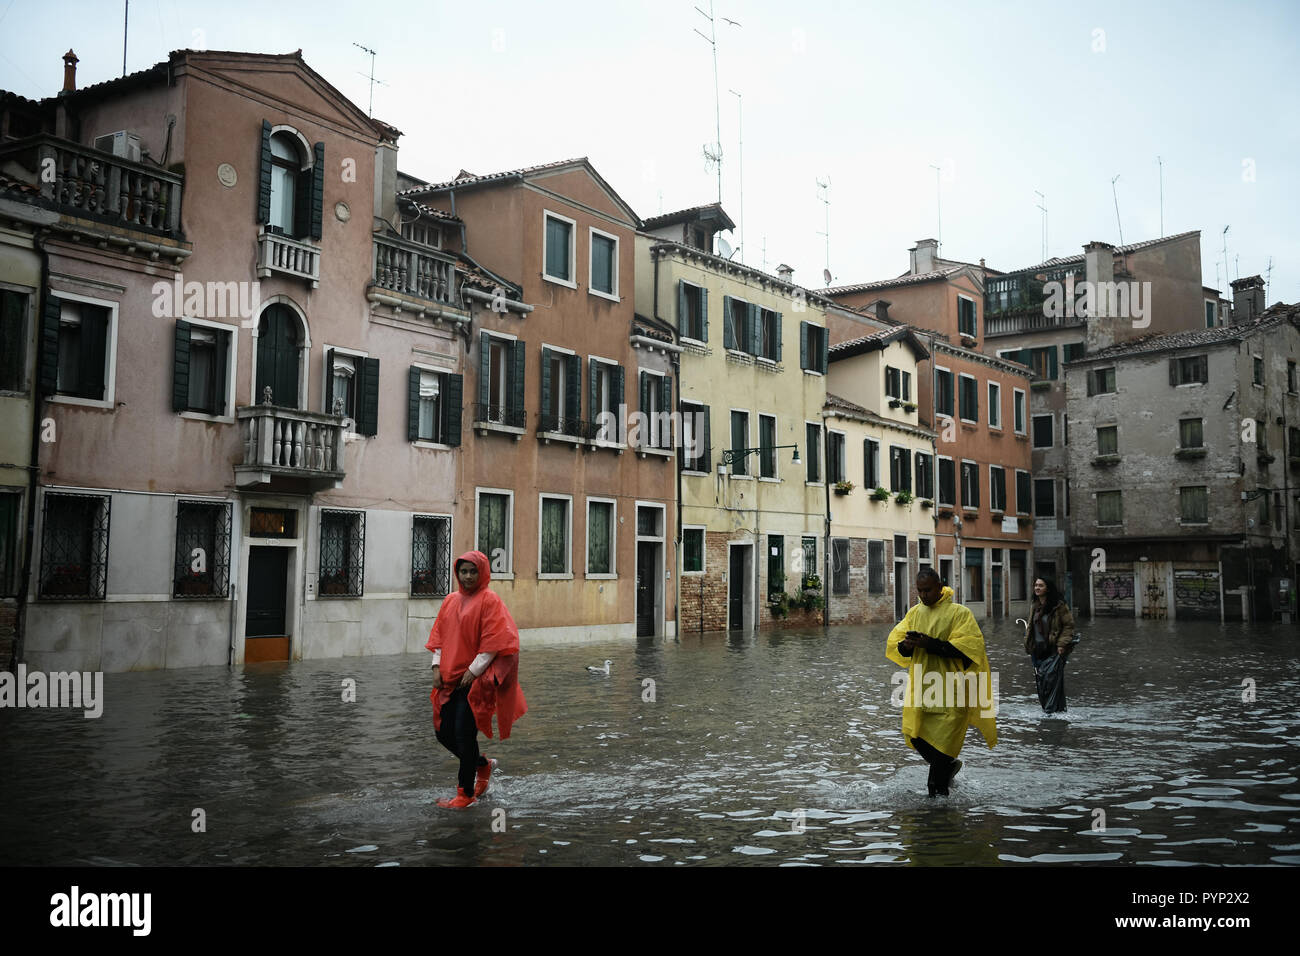 Venice, Italy. 29th October, 2018.Tourists wearing ponchos and wellies walk in high water during exceptional Acqua Alta - High Tide Floods in Venice, Italy on 29 October 2018. 70% of the lagoon city has been flooded by waters rising 149 centimetres above sea level. Credit: Piero Cruciatti/Alamy Live News - Stock Image